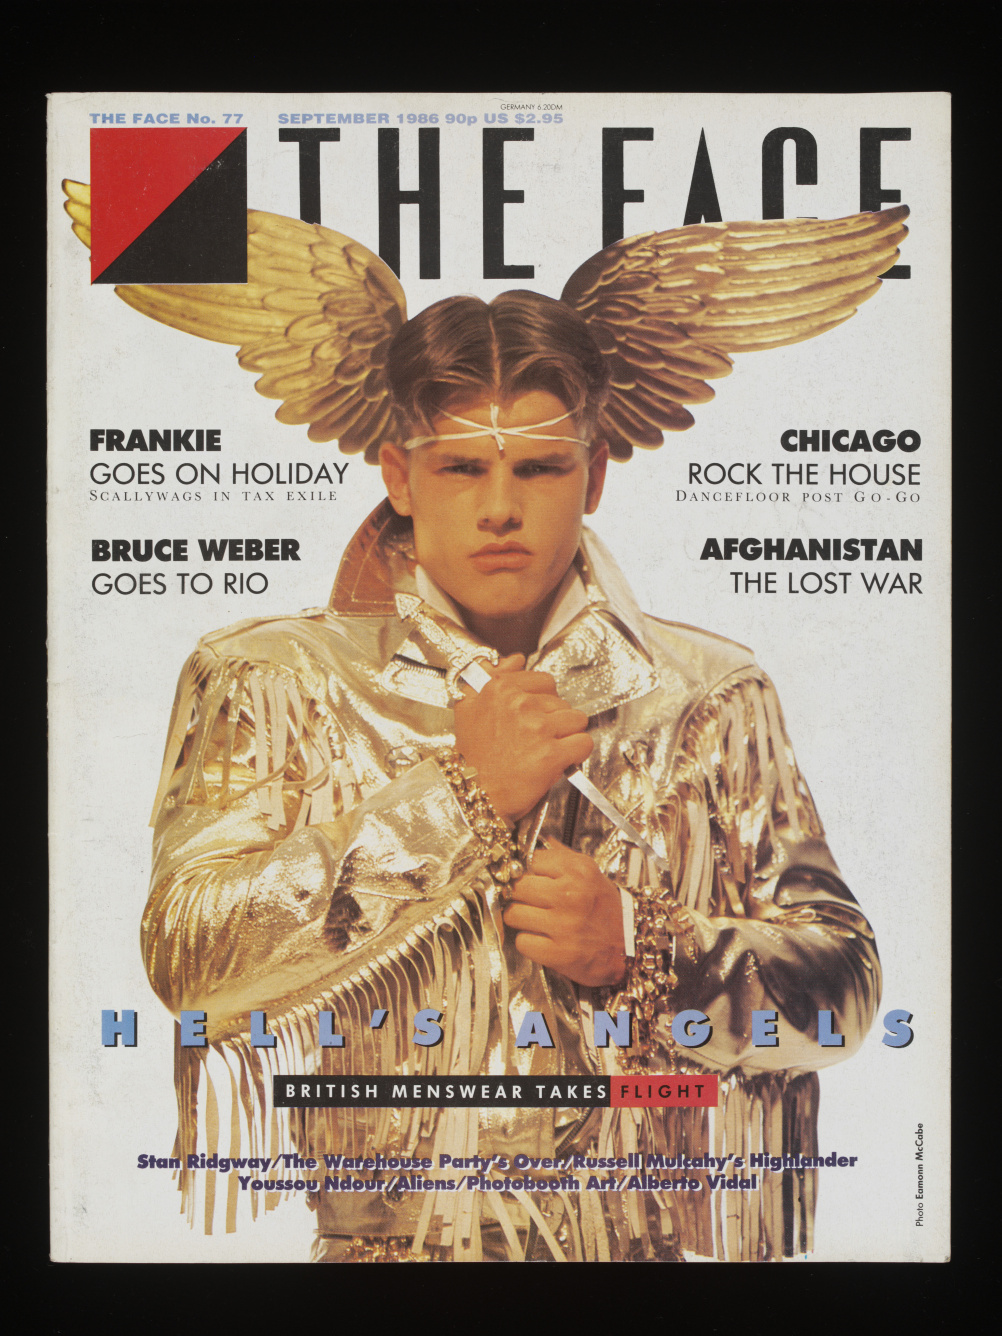 The Face, no. 77, September 1986 (Hell's Angels Cover)   Artist: Lloyd Johnson gold jacket, on display in exhibition